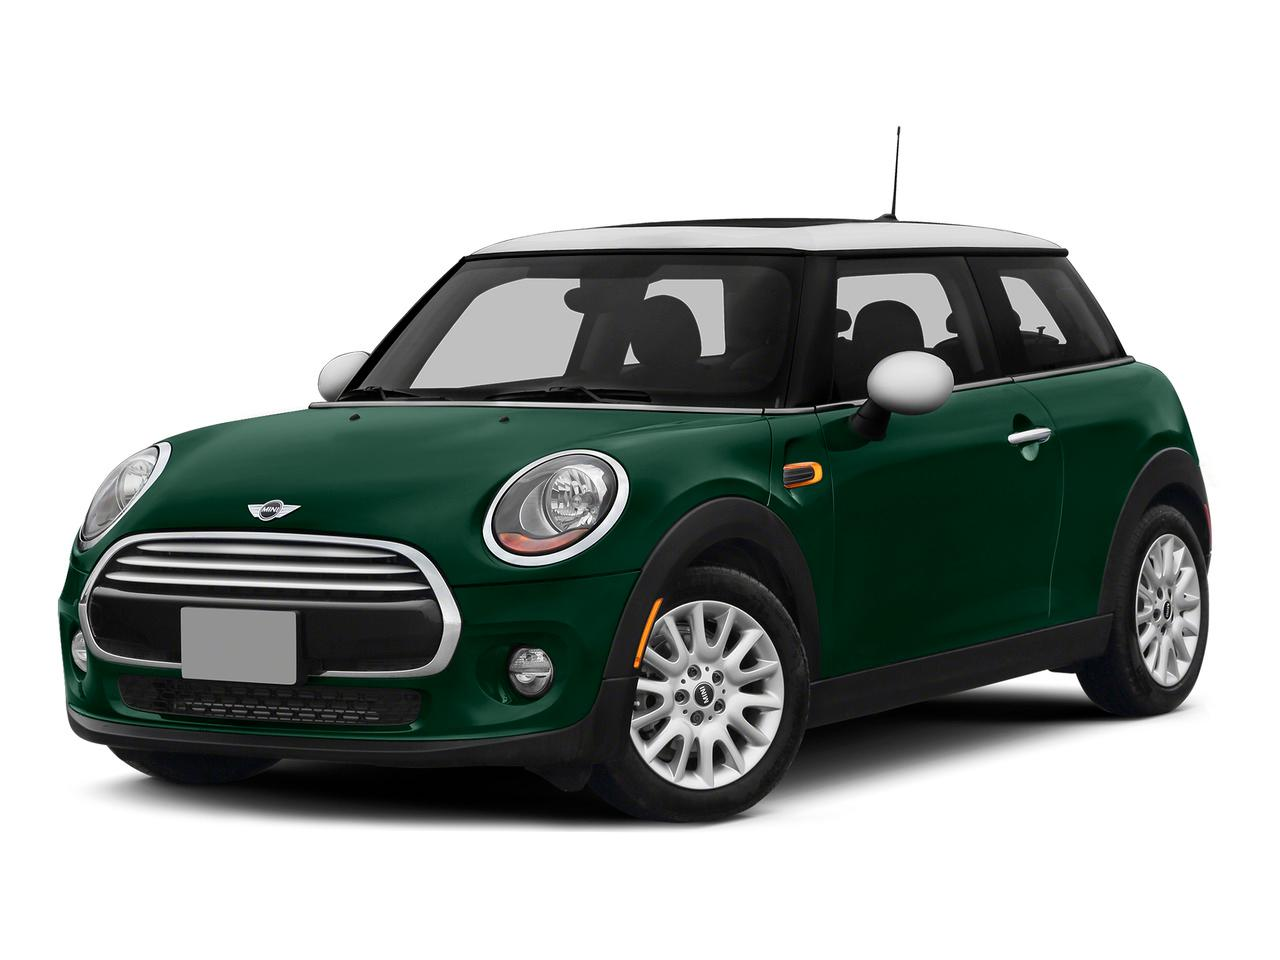 2015 MINI Cooper S Hardtop Vehicle Photo in Greeley, CO 80634